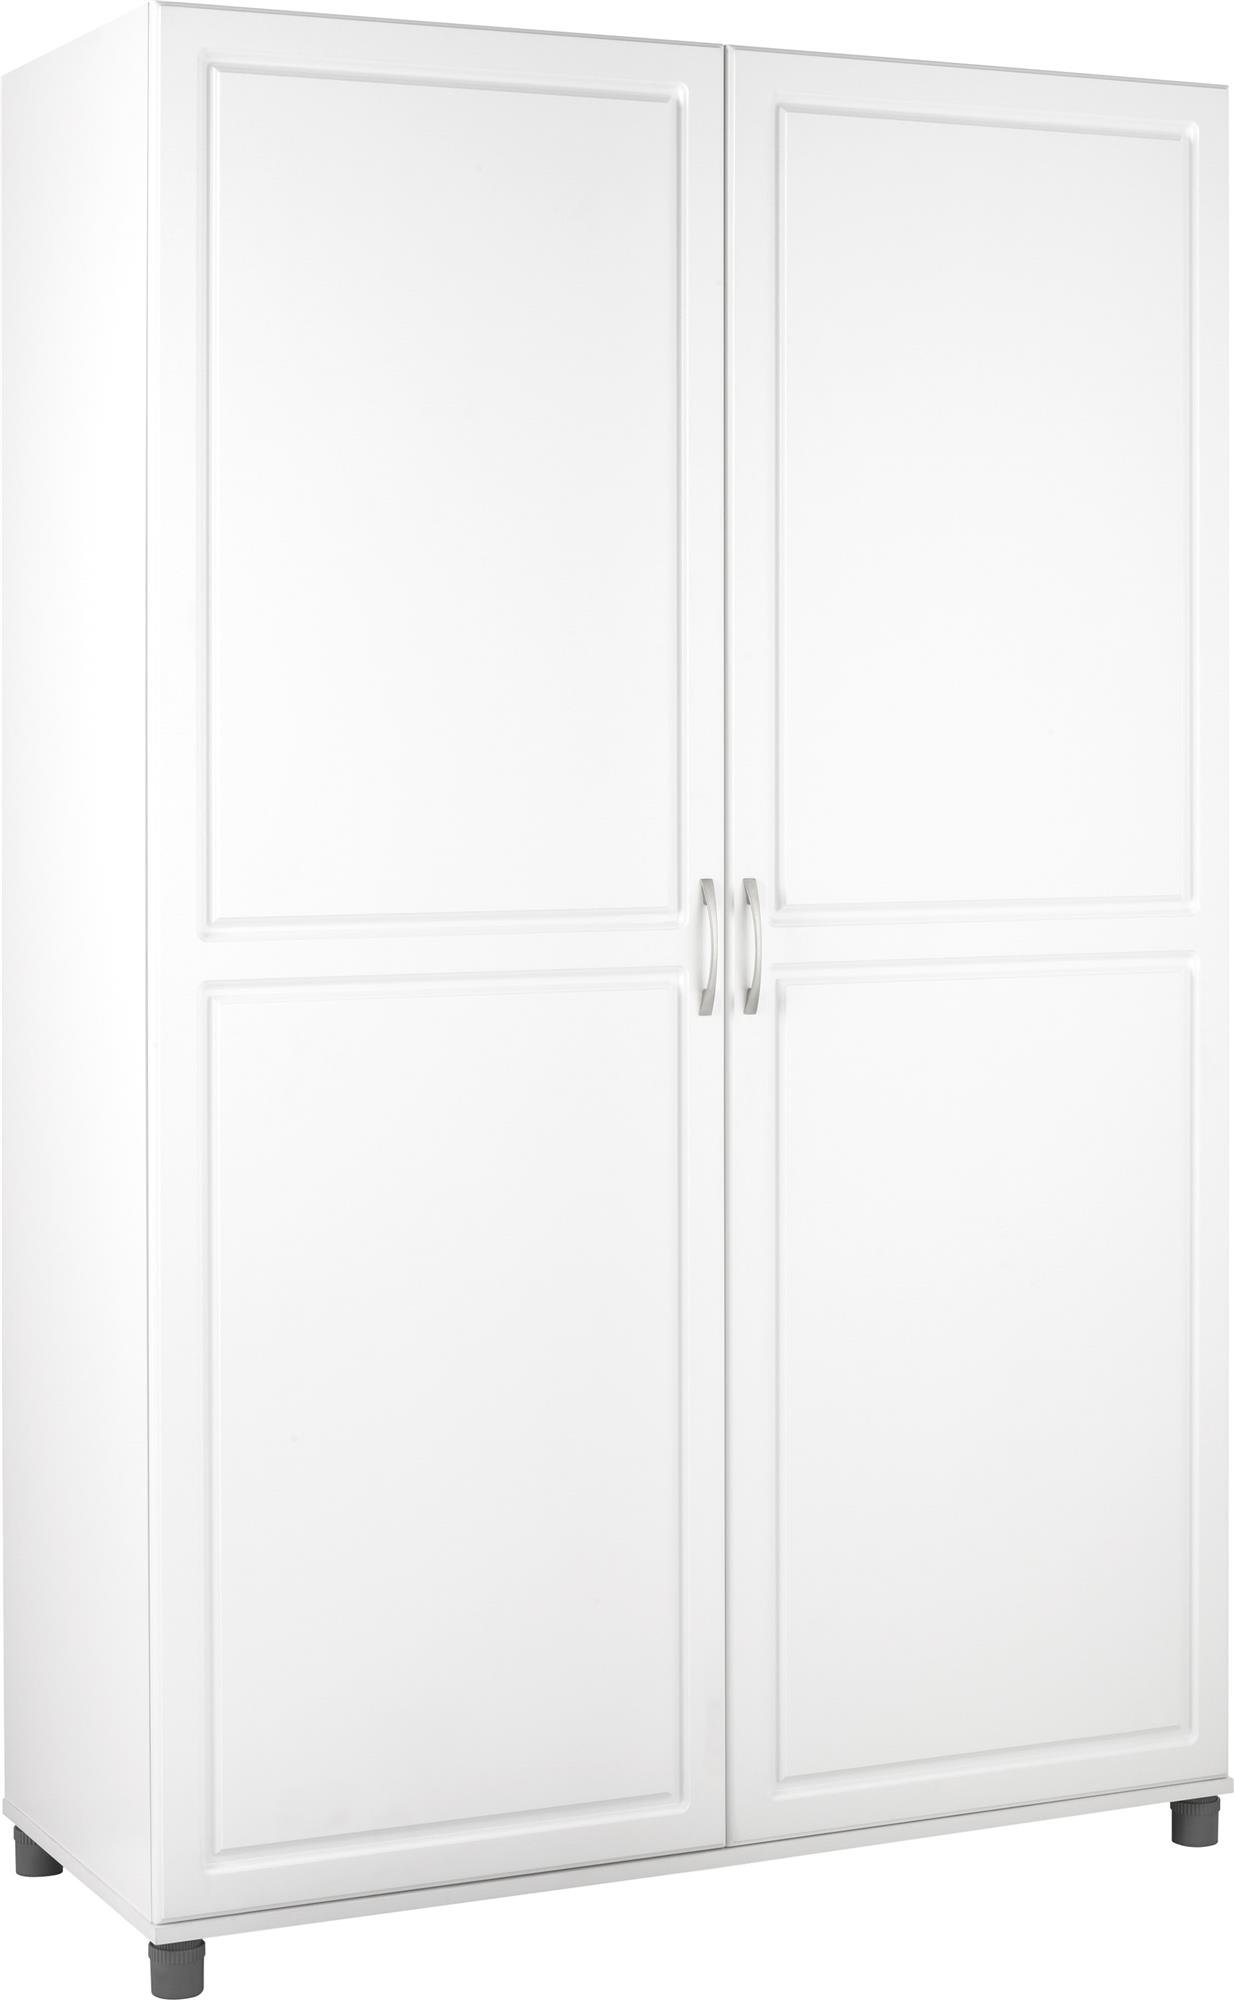 soft armoire wood finish white htm bedroom in w wardrobe classic cabinet p